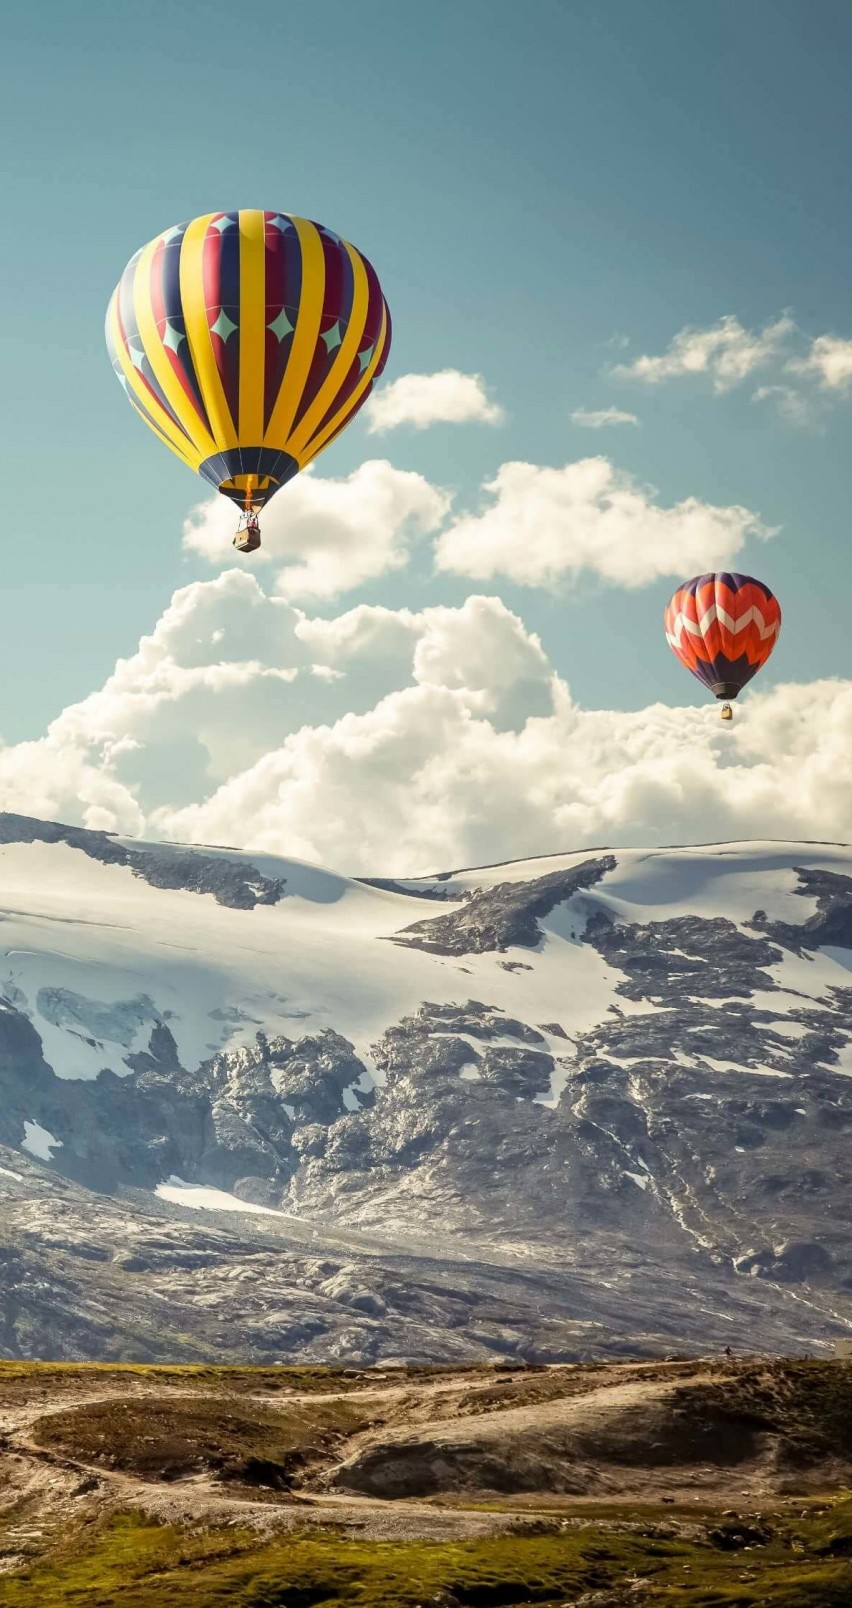 Hot Air Balloon Over the Mountain Wallpaper for Apple iPhone 6 / 6s